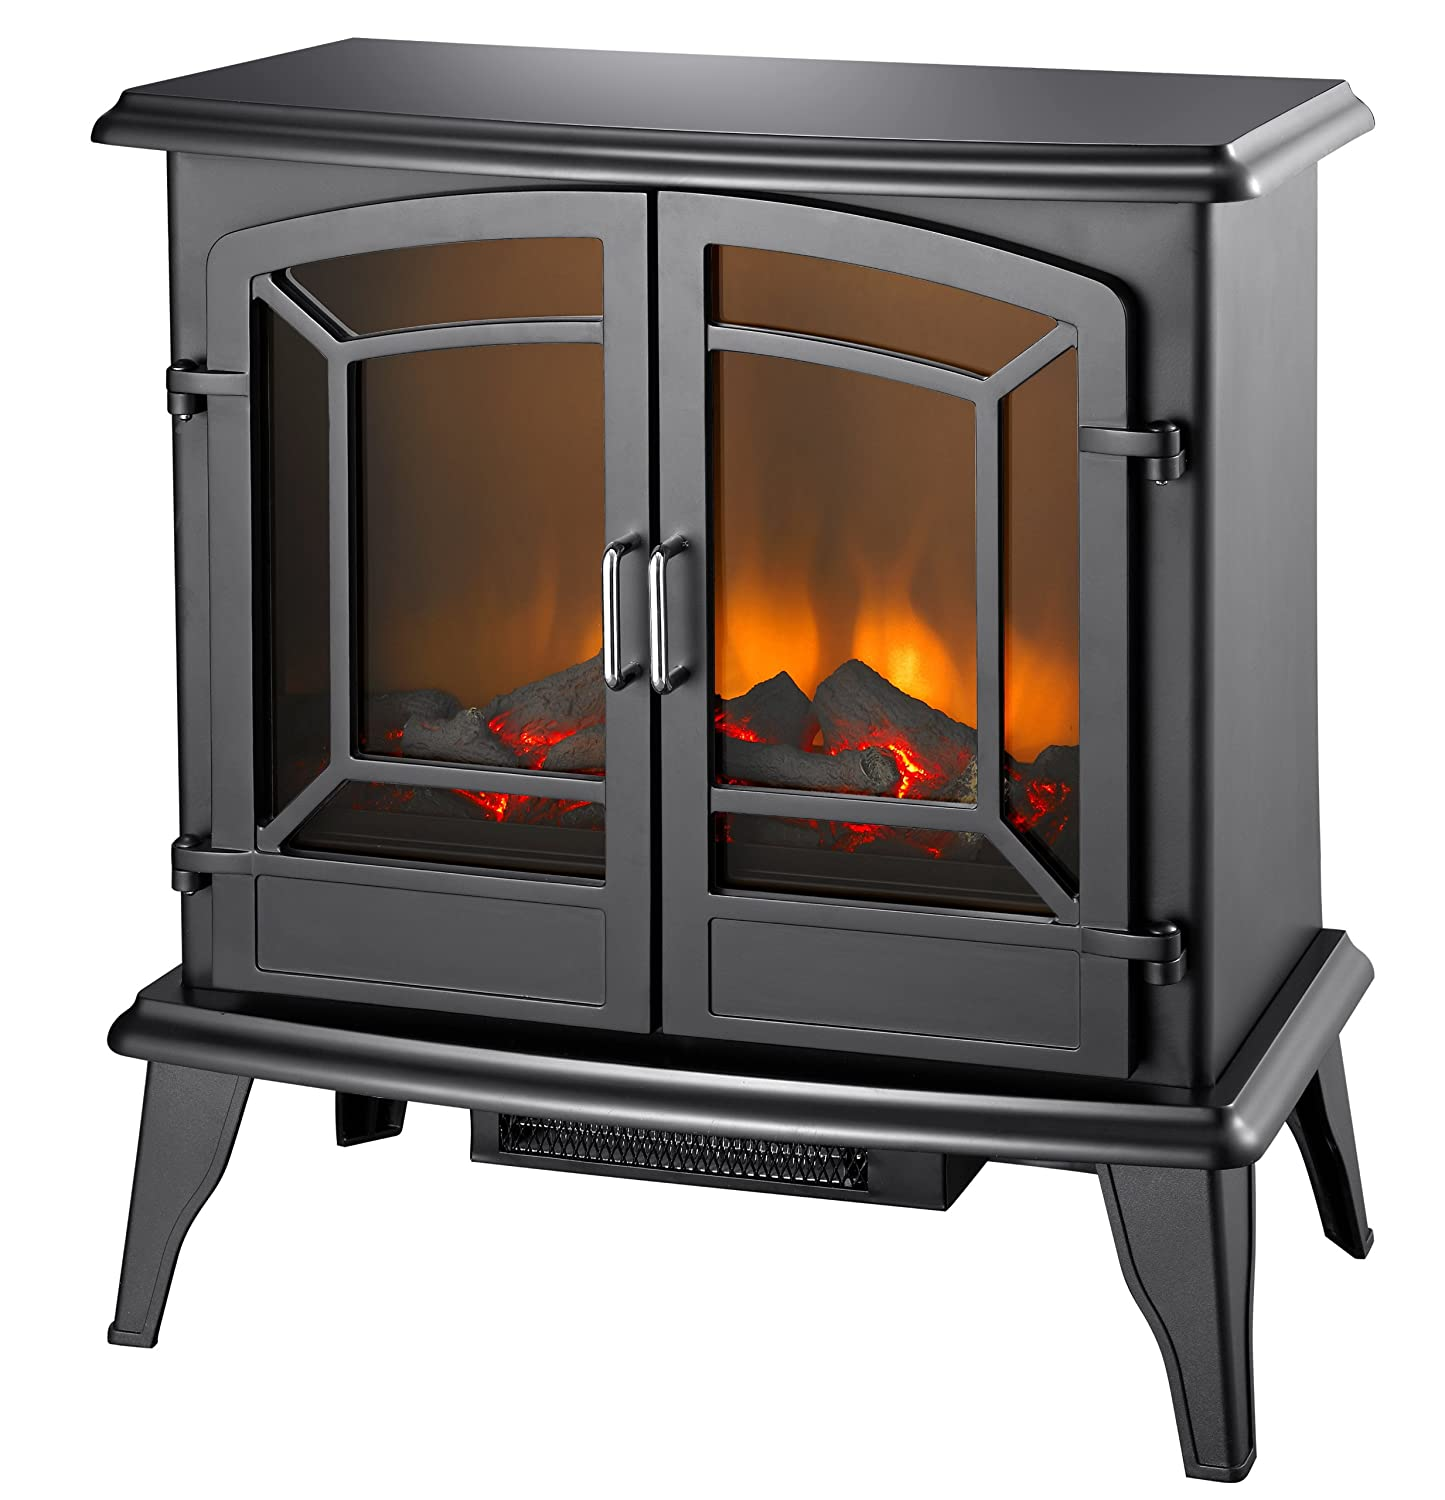 i live comfort ceramic is few seveal thermostat and that wasn sam t review freely model product quirky heaters the acting very my effective bit experience reviews zone comforter people read a heater user was complained